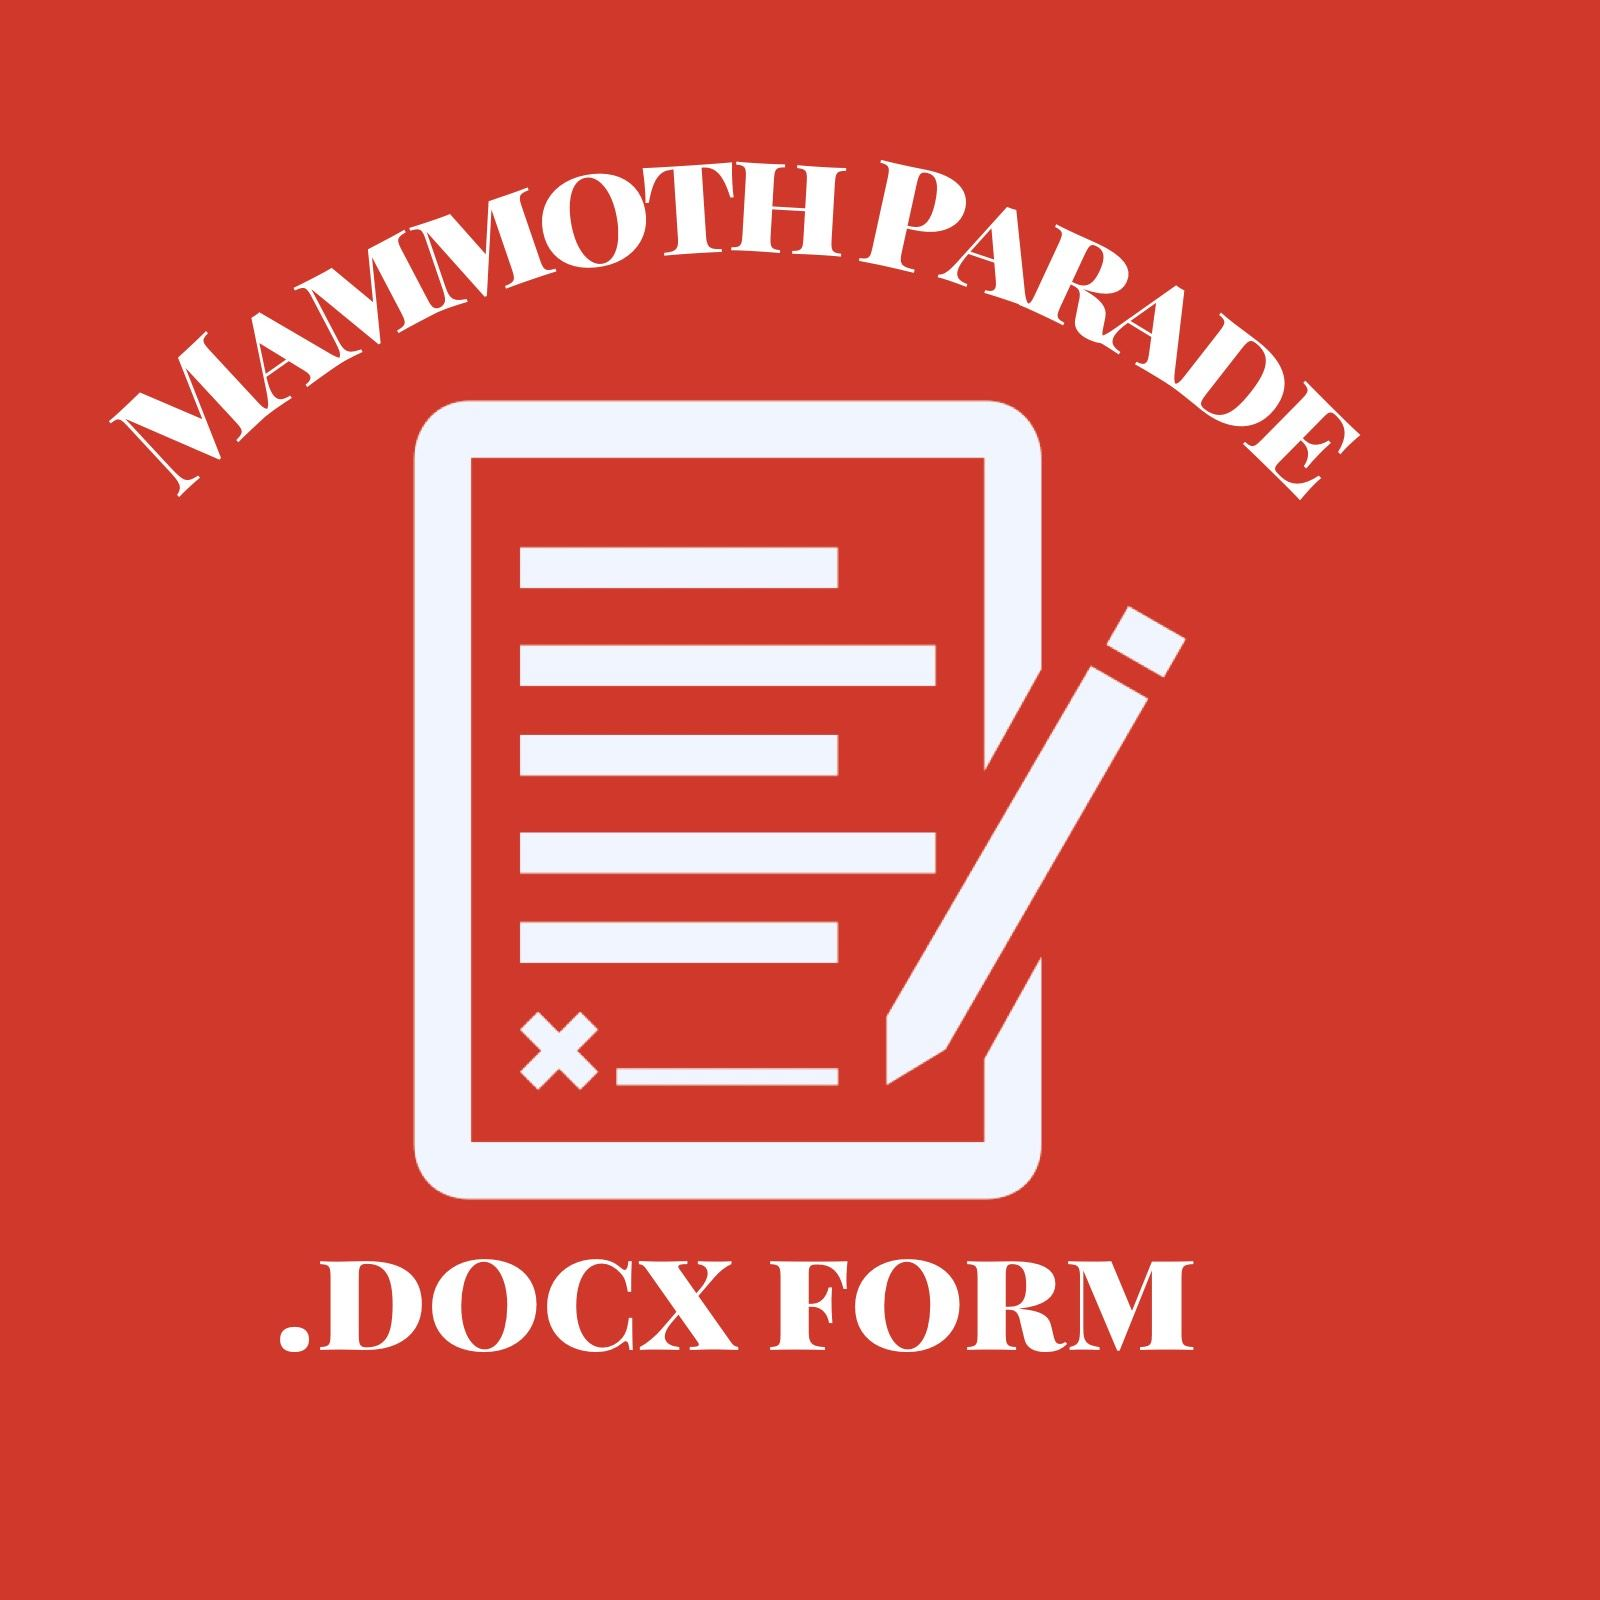 Mammoth Parade .doc format button